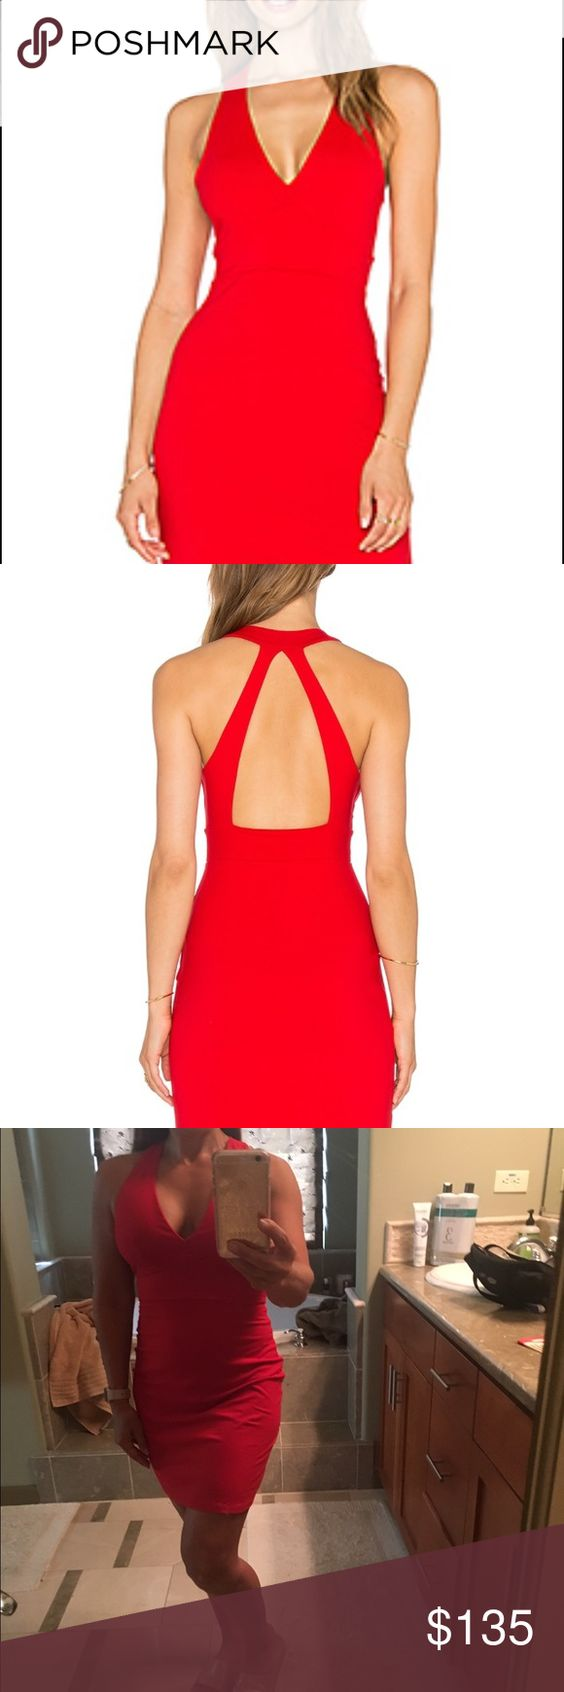 NWOT Susana Monaco Gia Dress Perfect Red Small !!! I bought this dress at Revolve.com for $165-New without tags-This dress was bought for my vacay but it was never worn. The only time was for this pic! My loss is your gain!!! From a smoke free, cat free home! Susana Monaco Dresses Mini